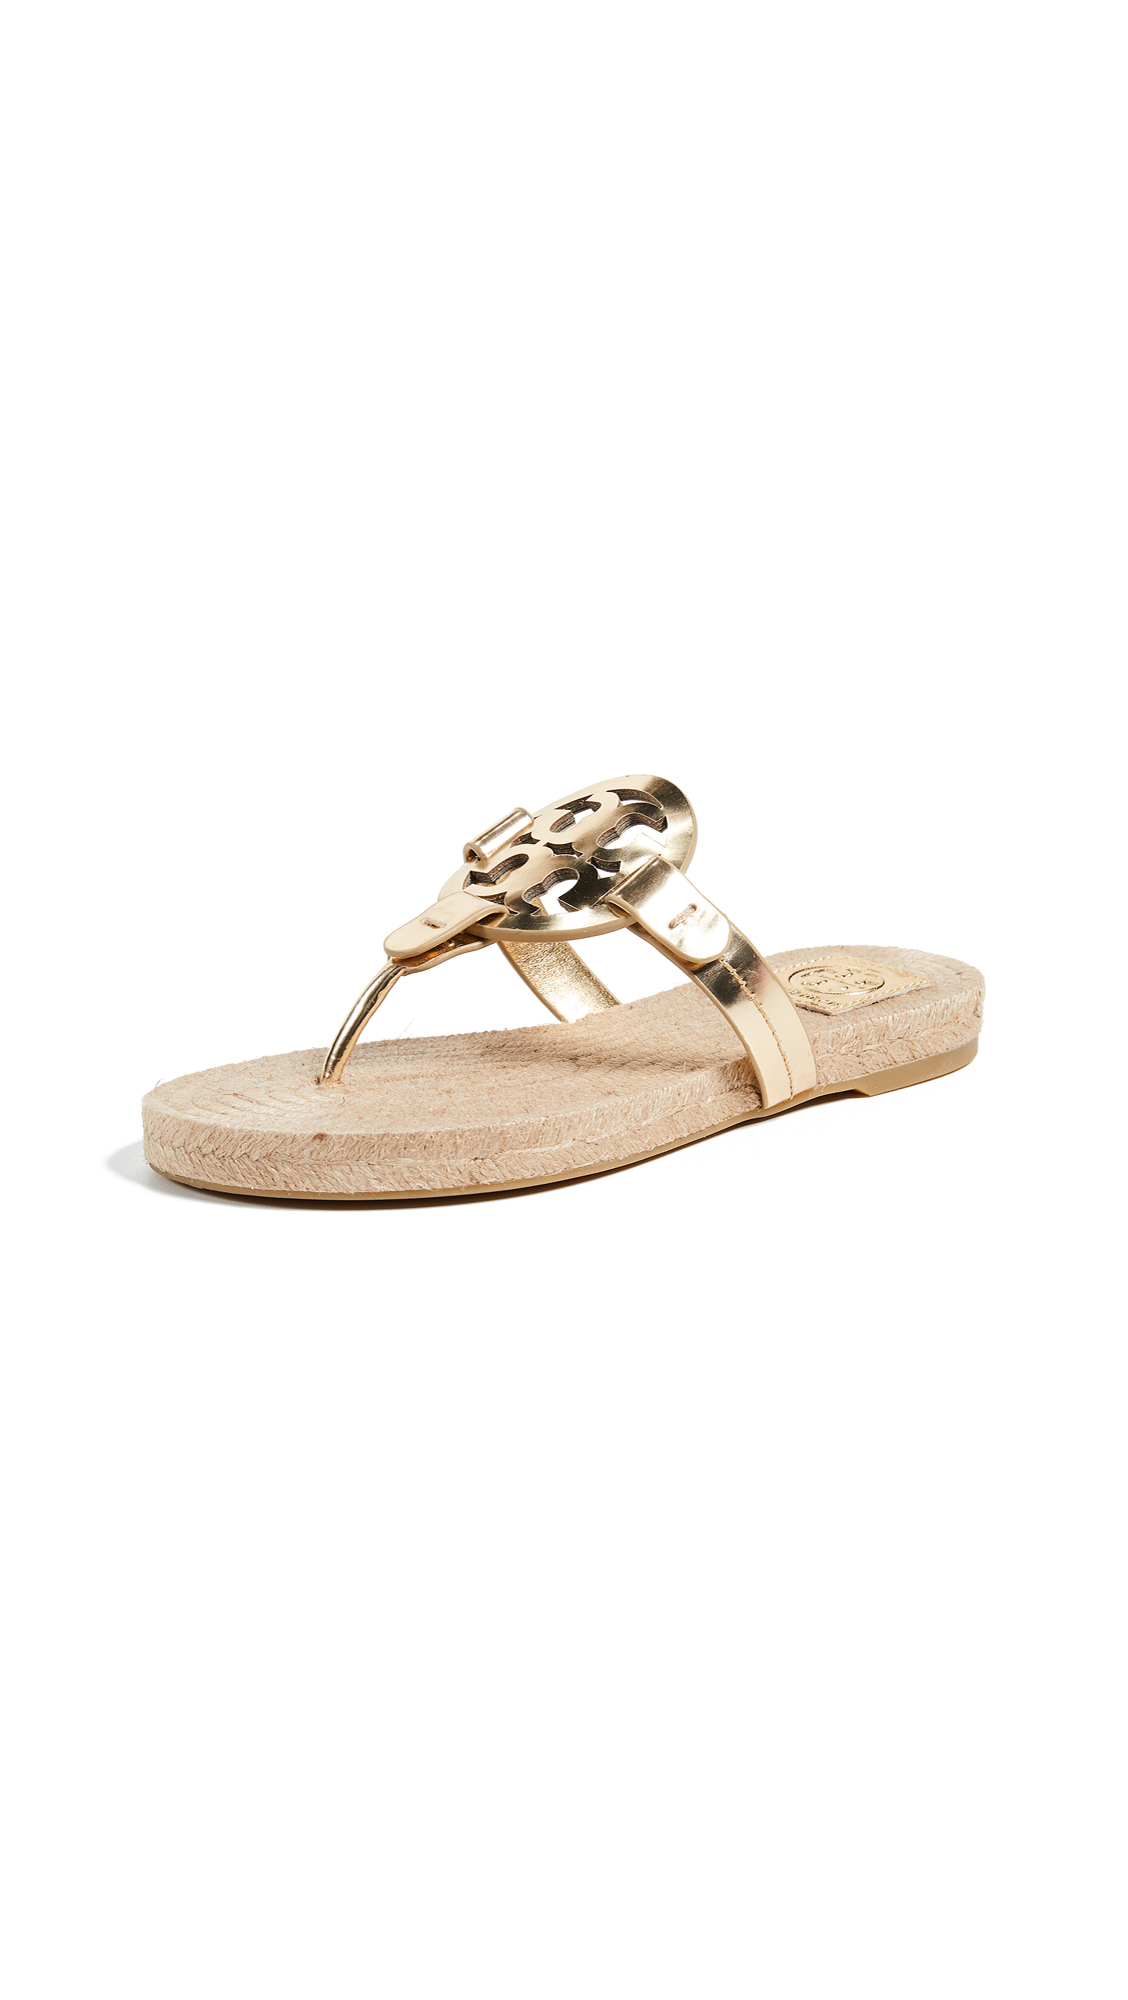 Tory Burch Miller Espadrille Sandals - Gold/Perfect Cuoio